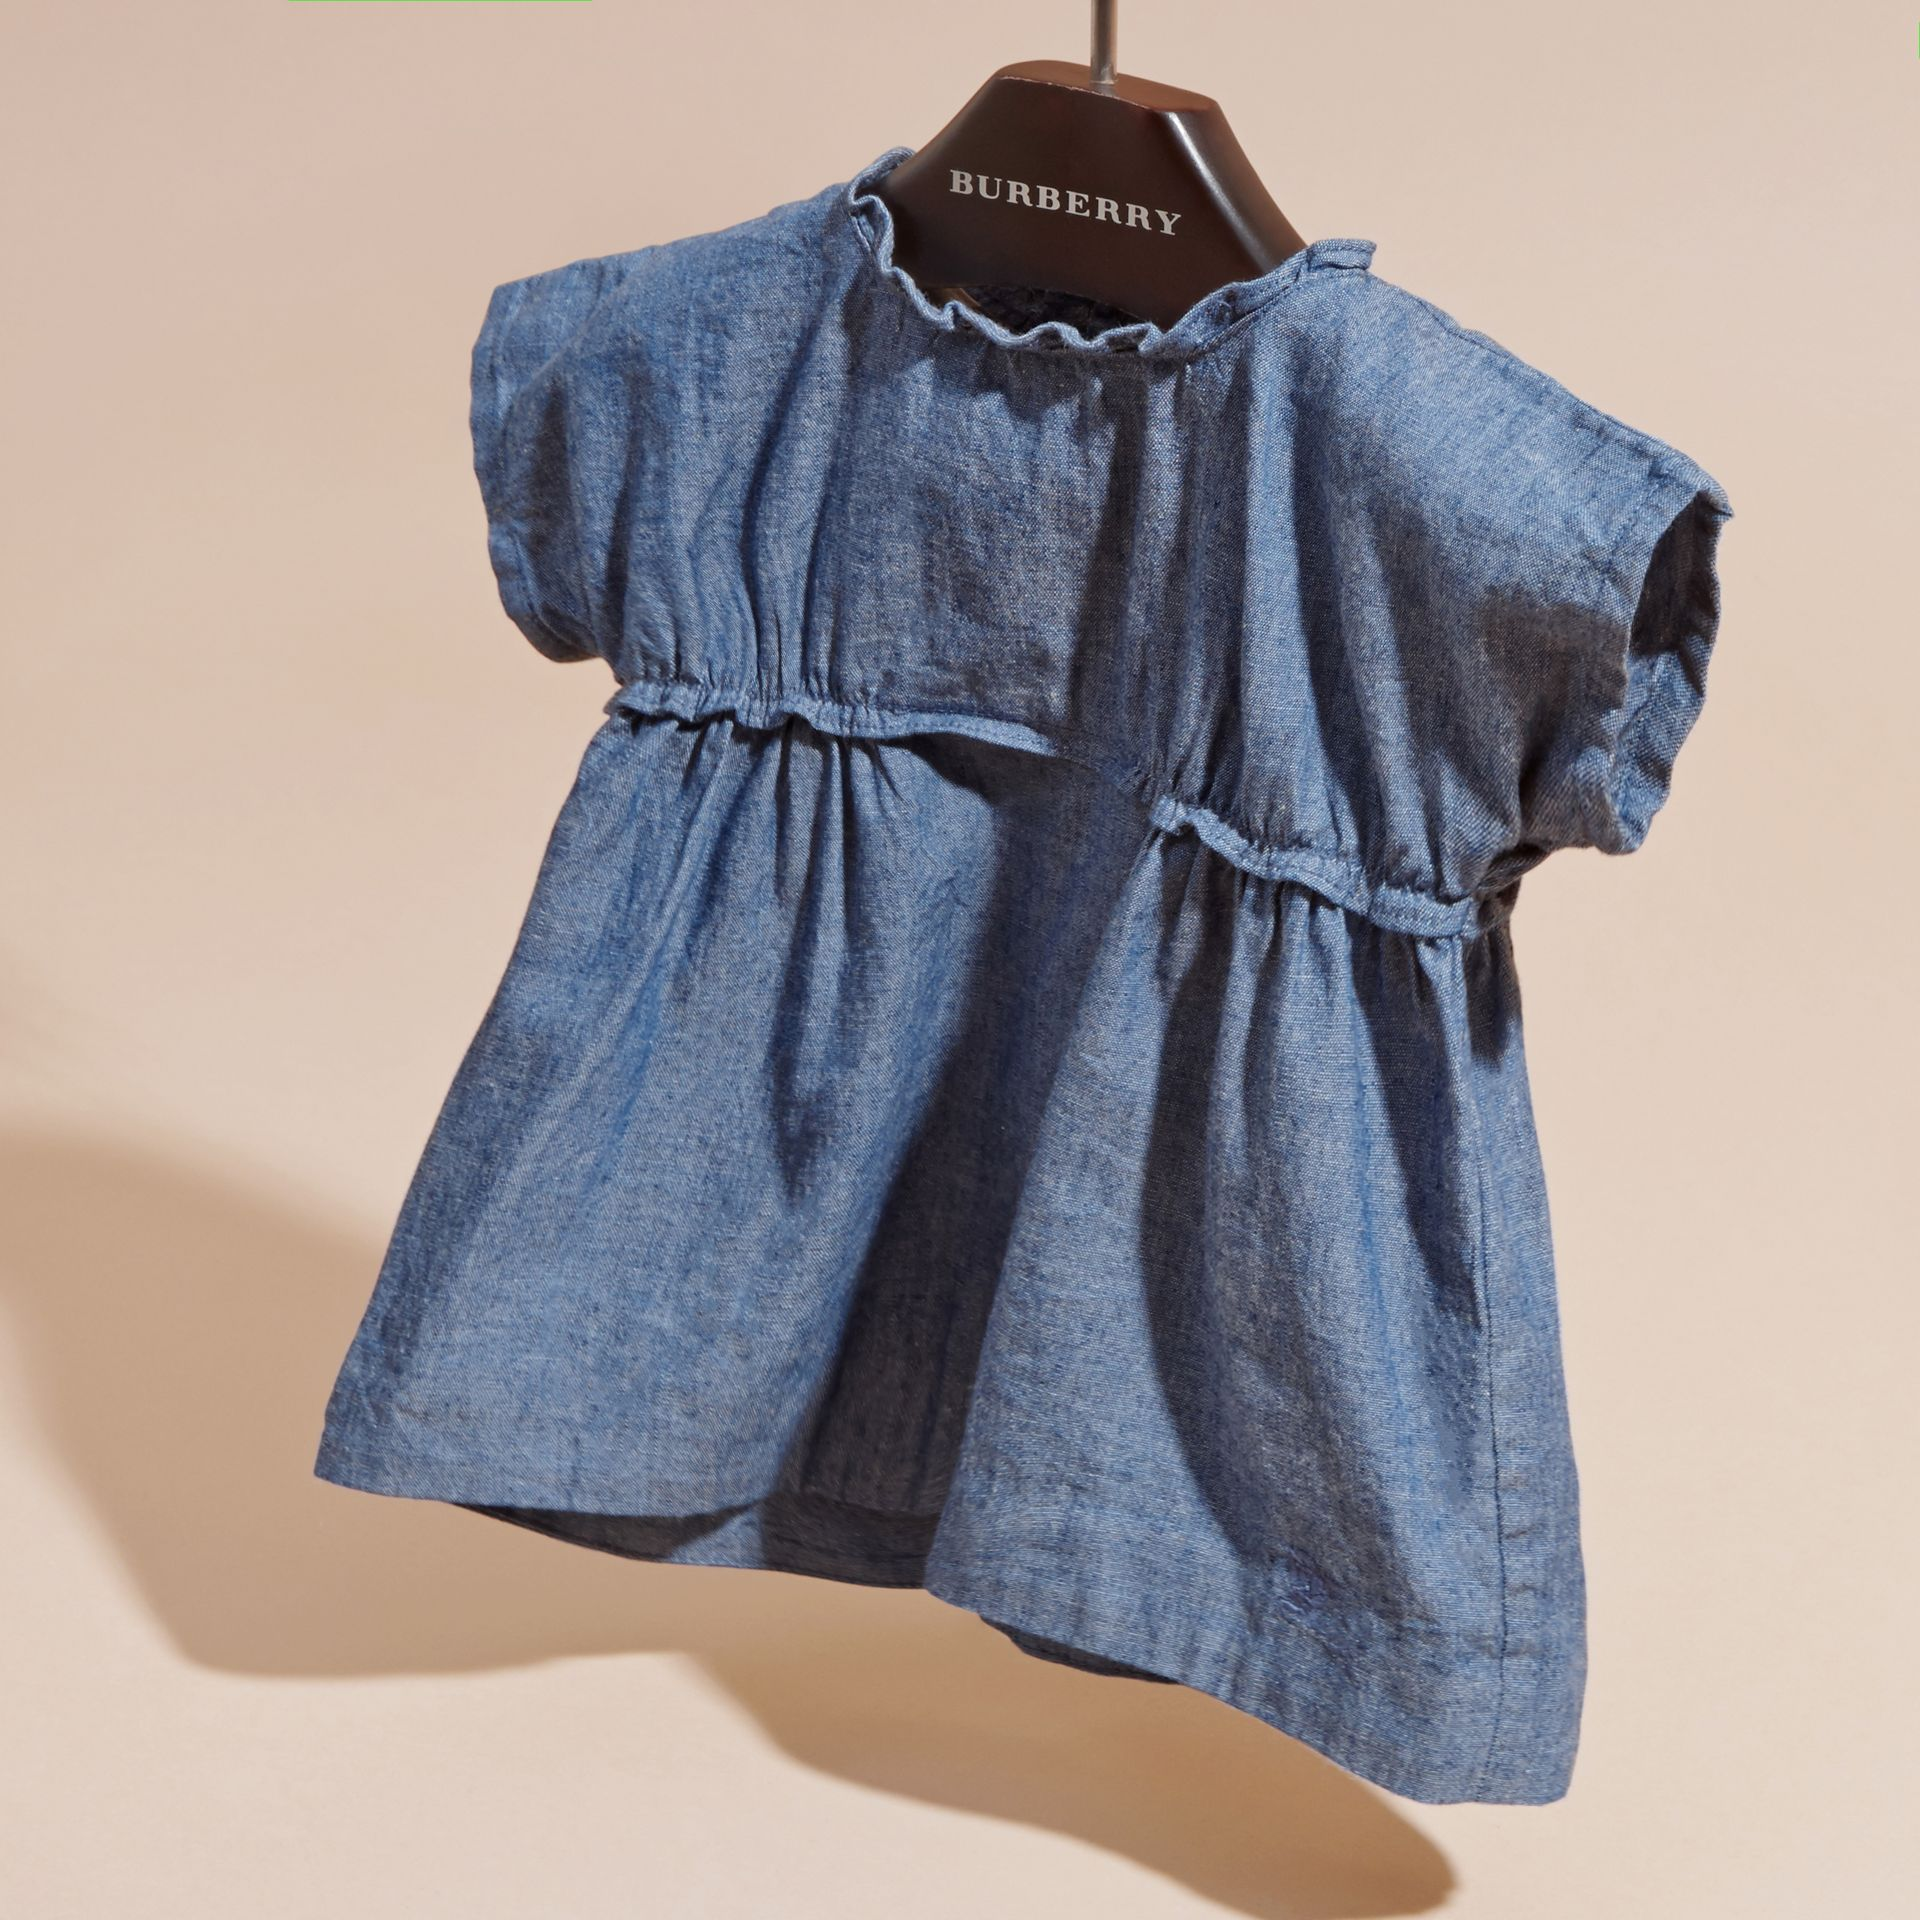 Ruffle Detail Cotton Chambray Top | Burberry - gallery image 3